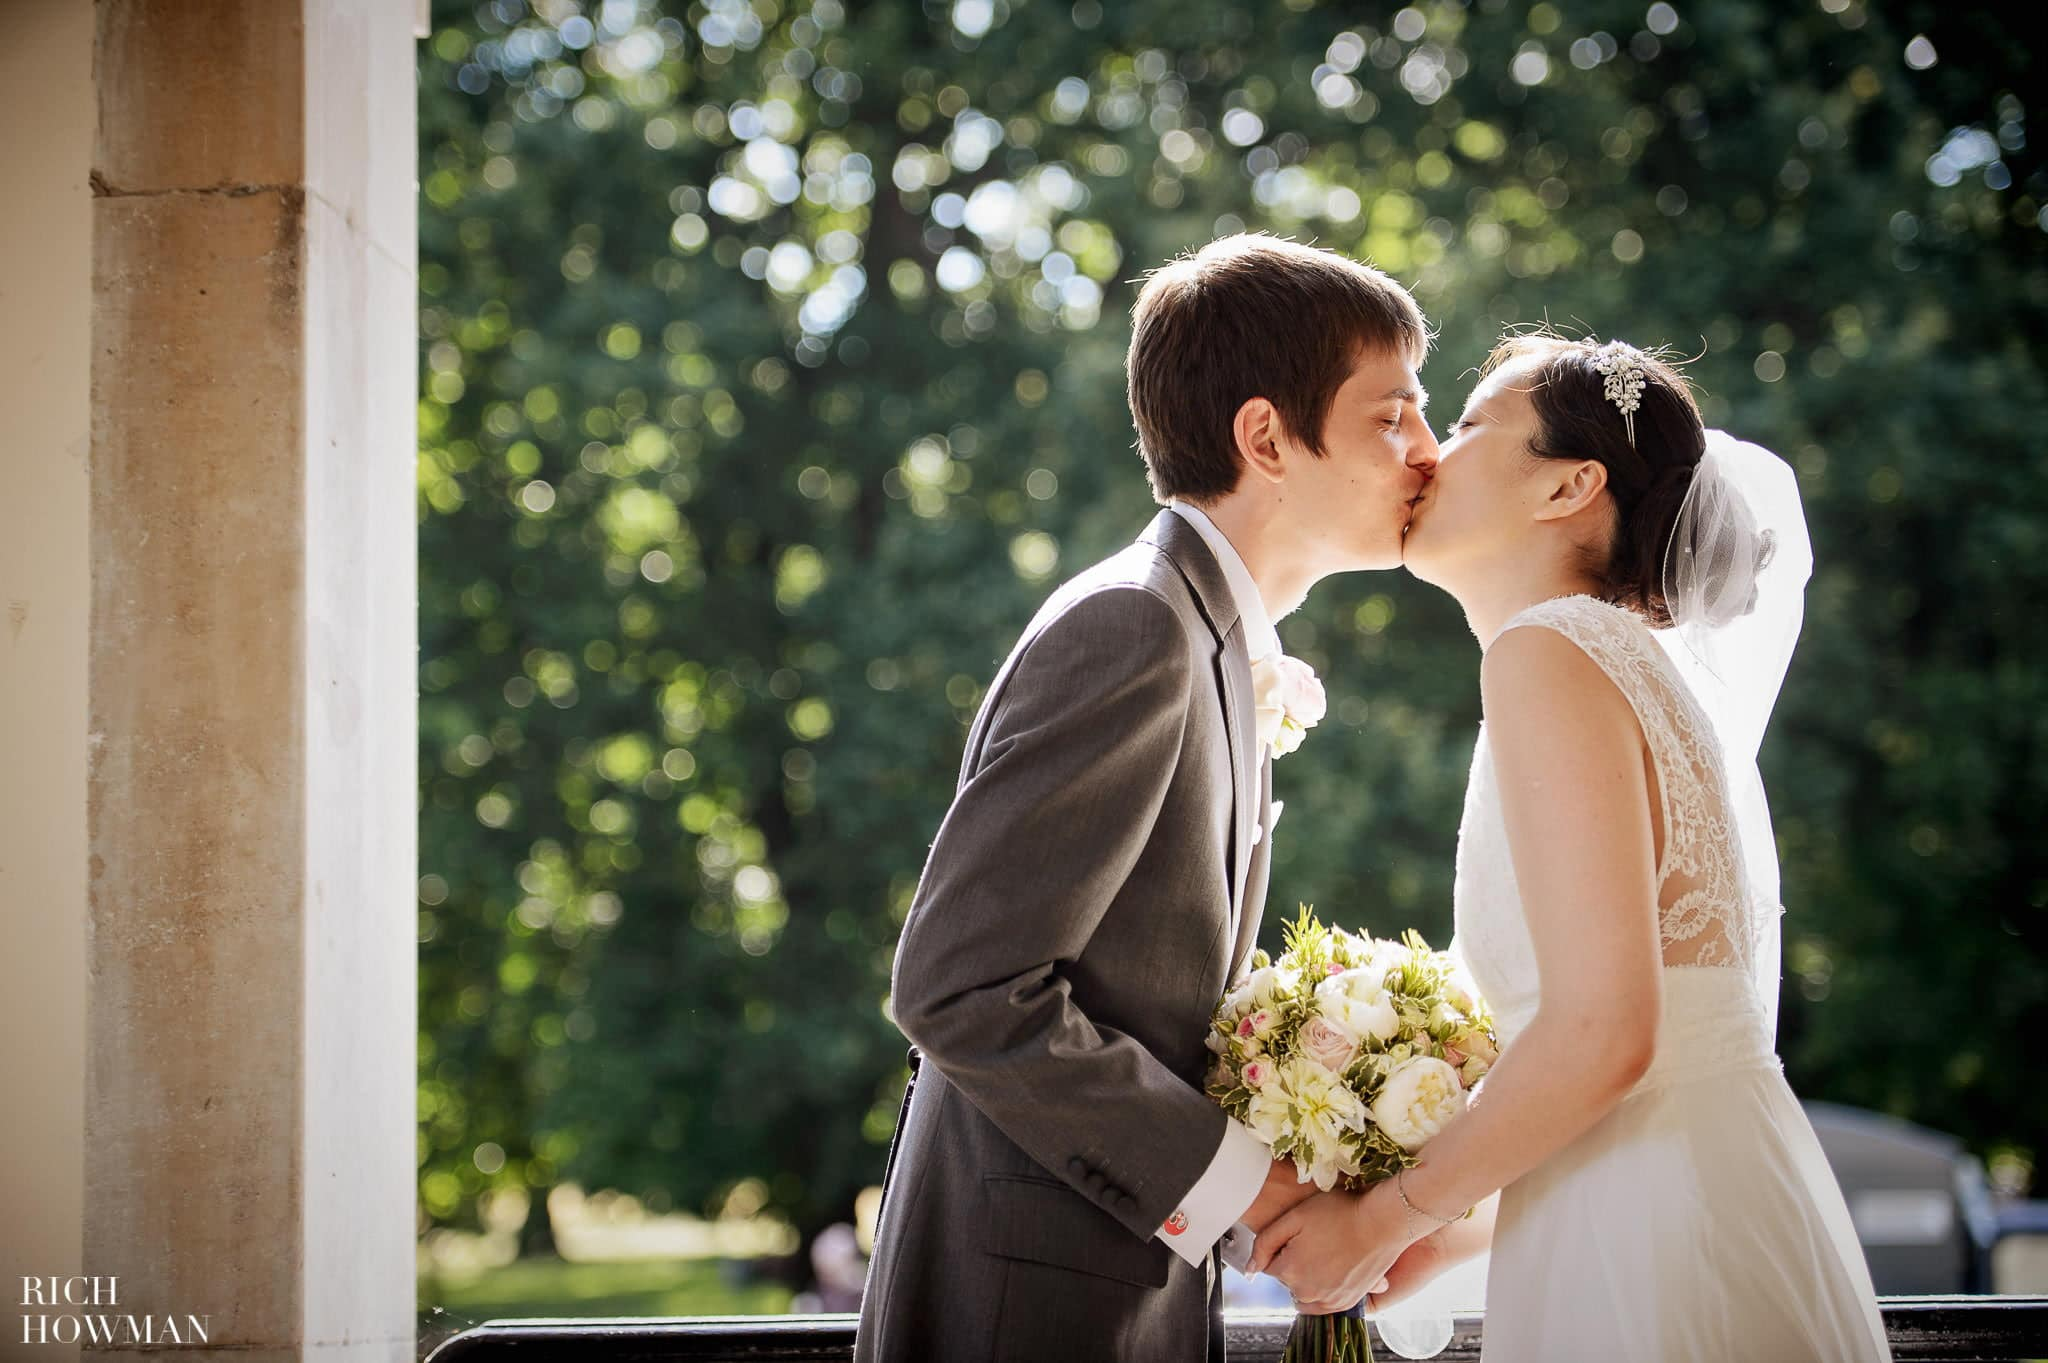 Notting Hill Wedding | Wedding Photographer London - Rich Howman 26